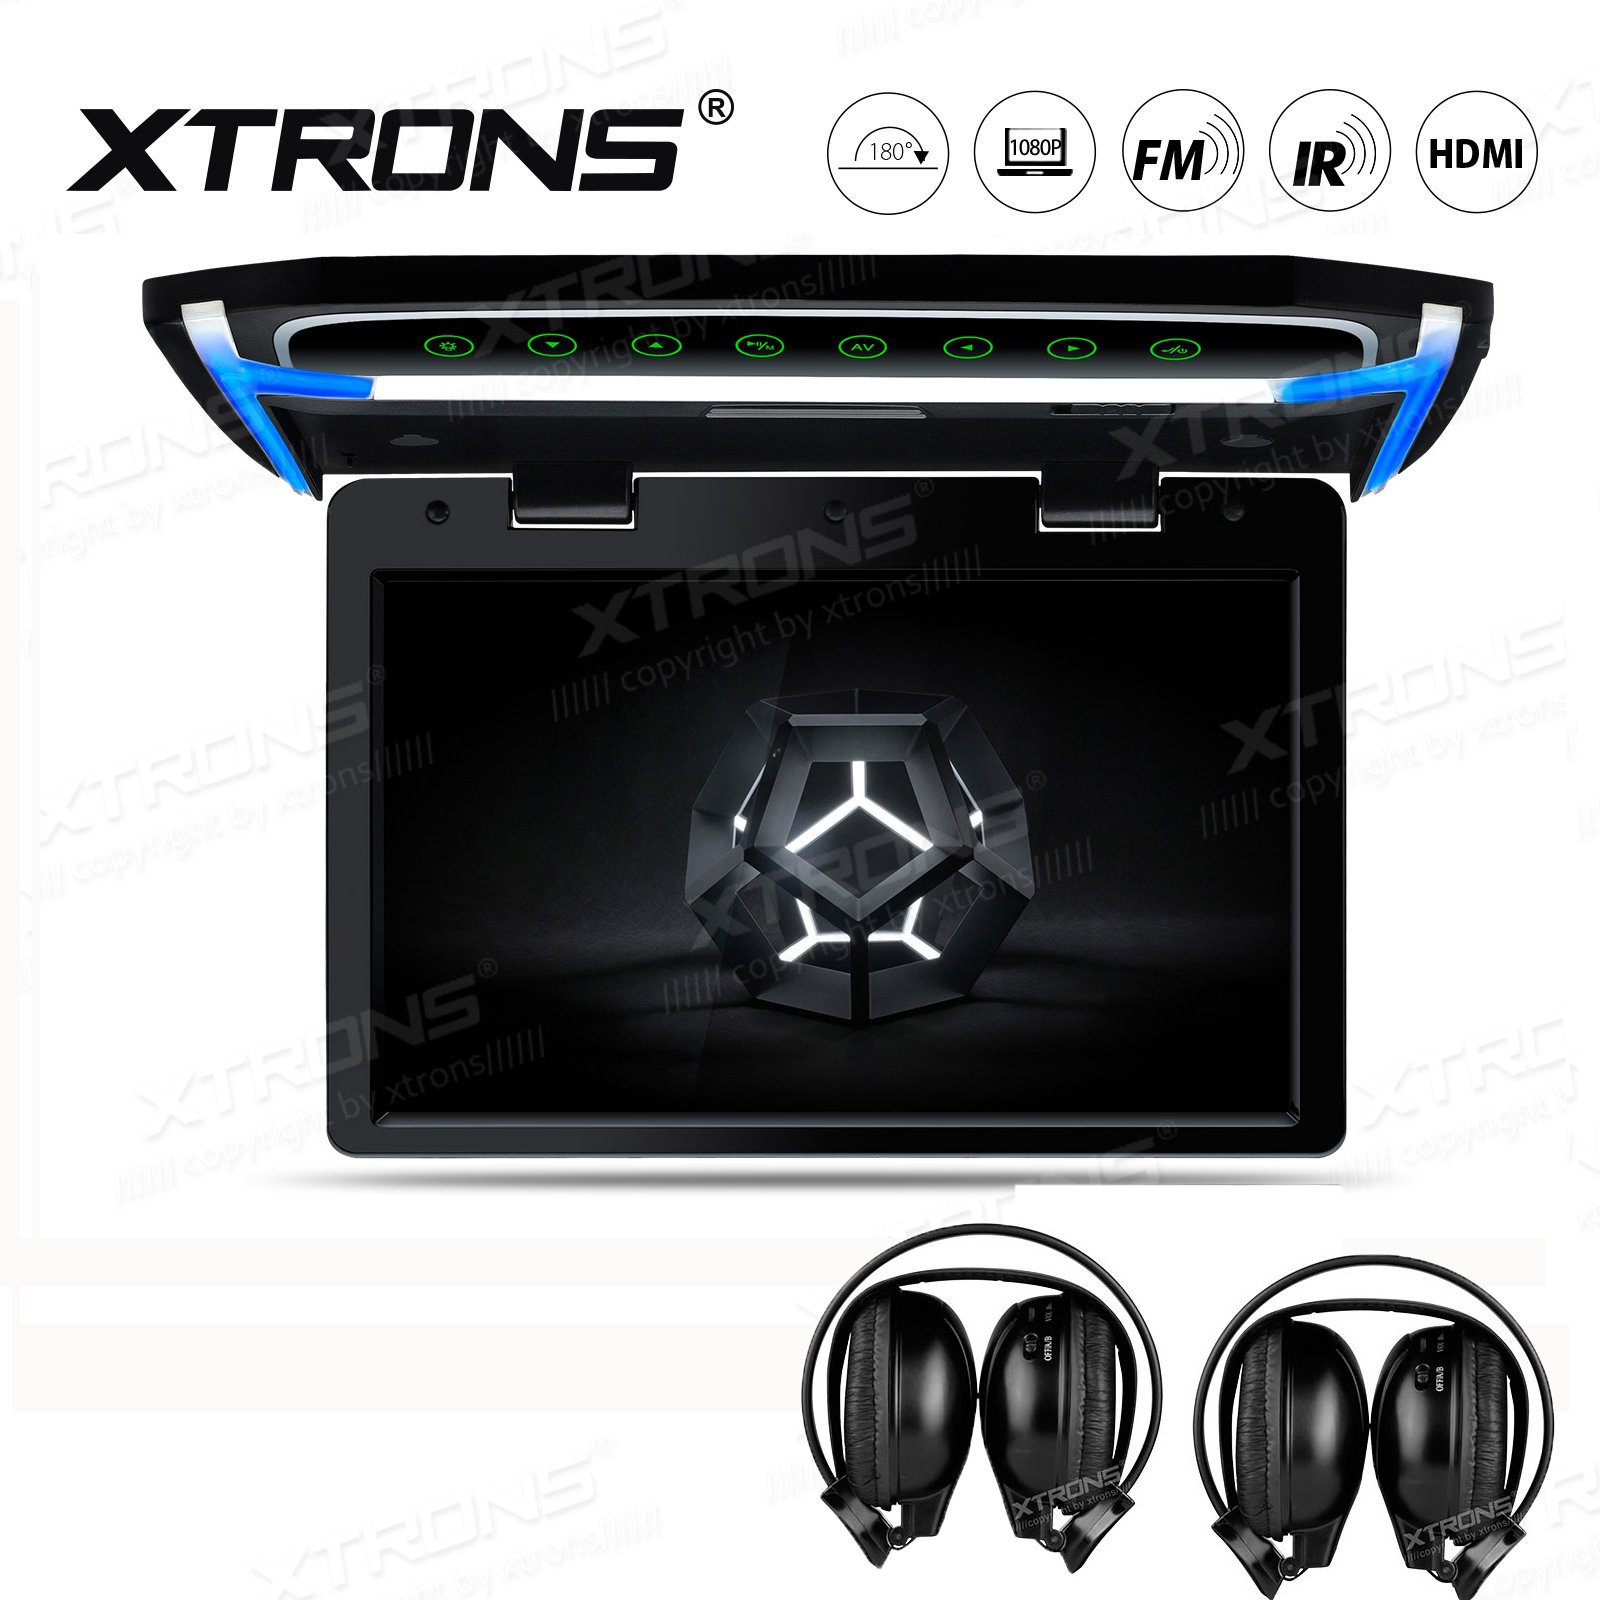 XTRONS 10.2 Inch Digital TFT Screen 1080P Video Car Overhead Player Roof Mounted Monitor HDMI Port IR Headphones